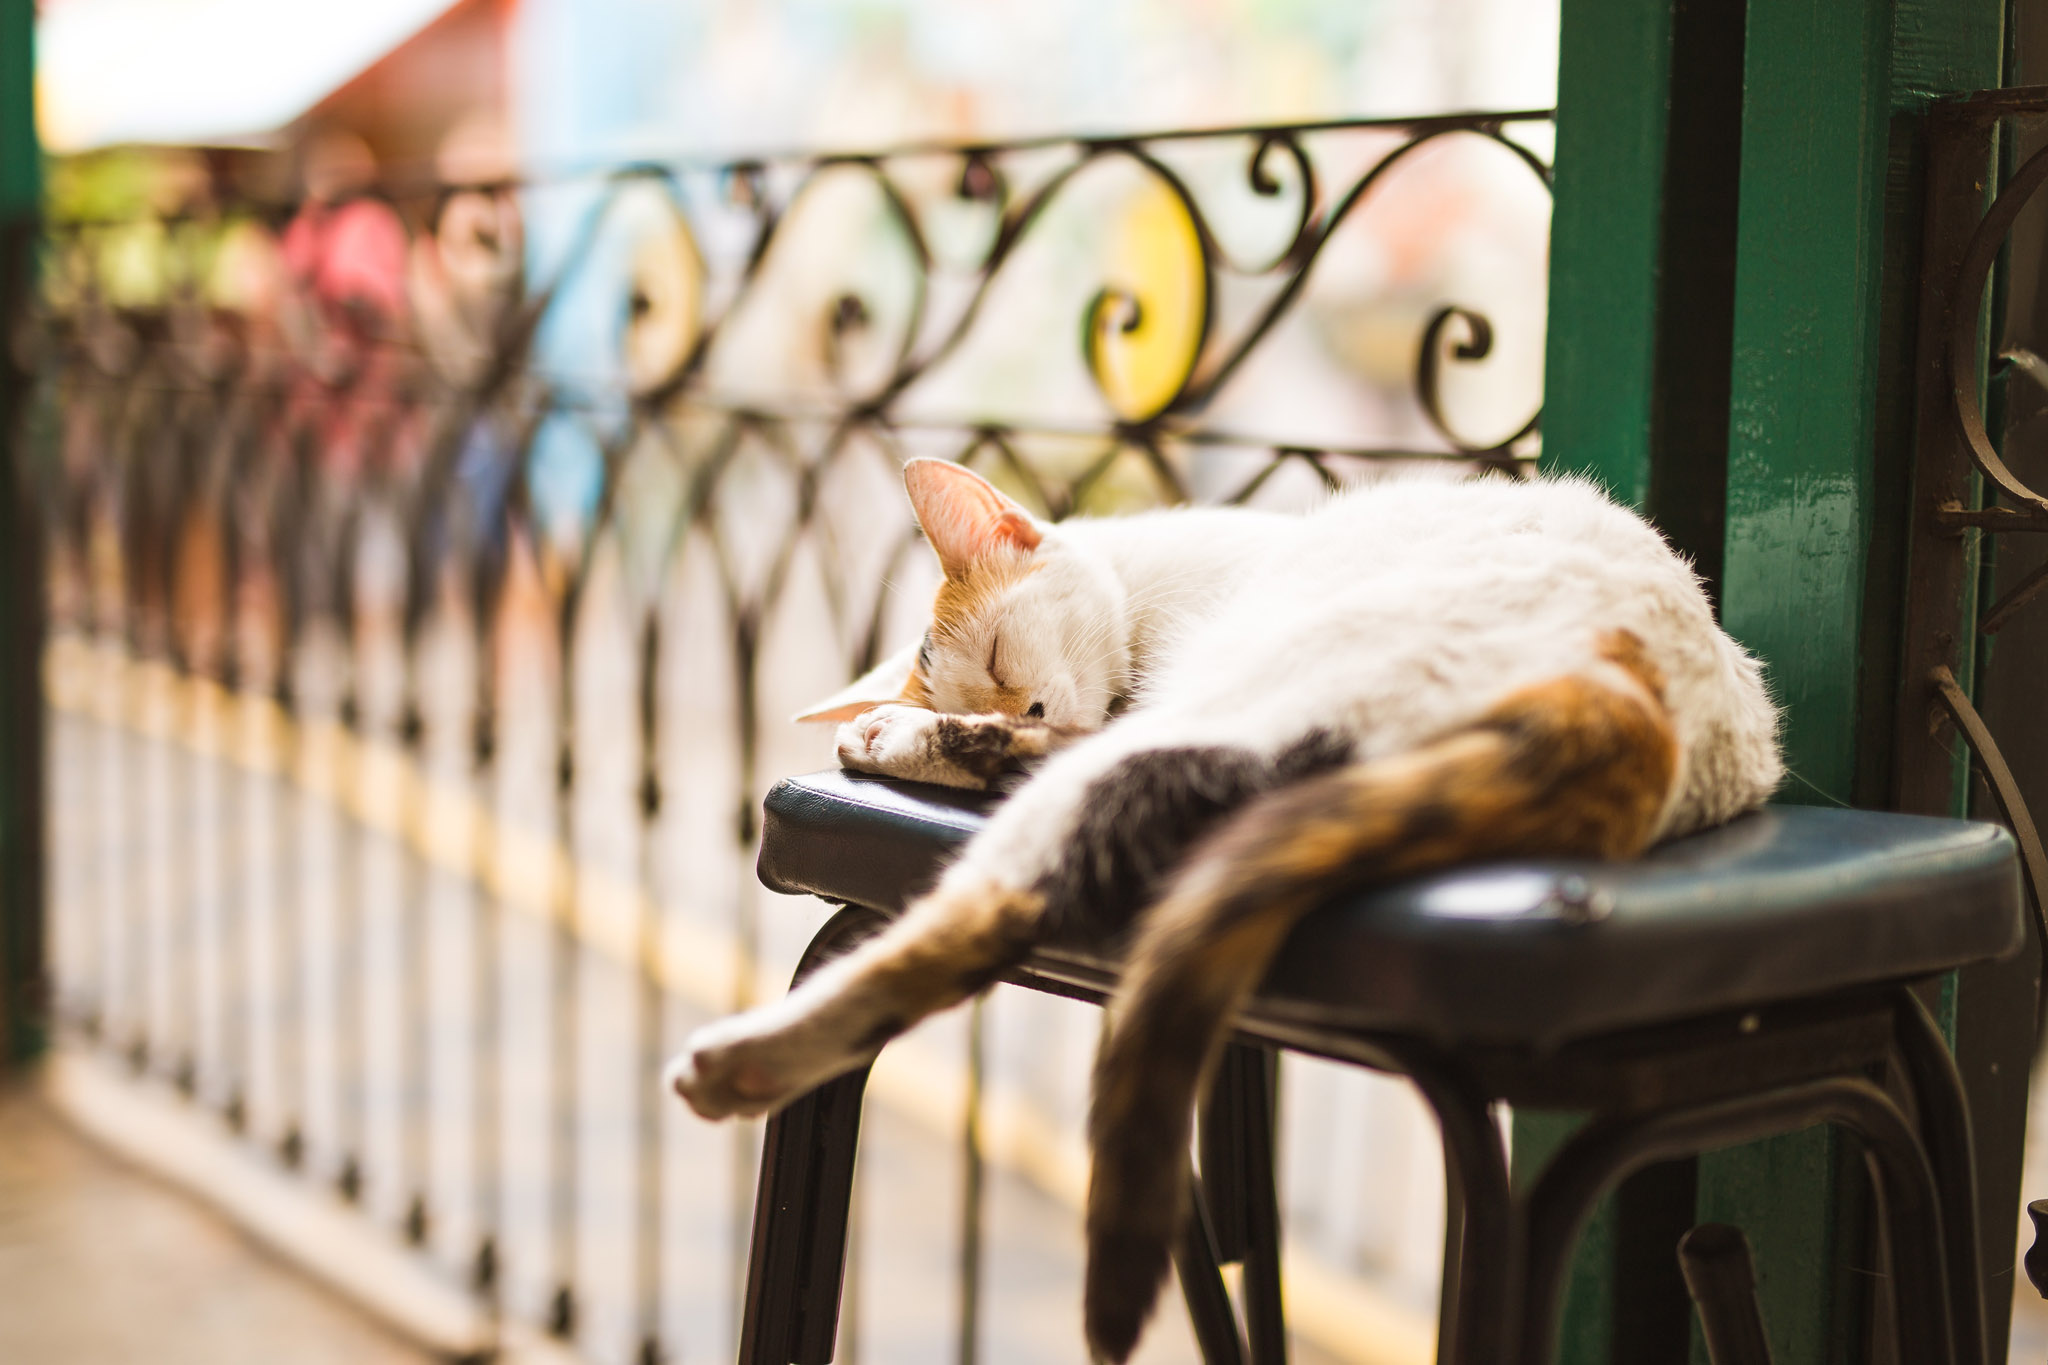 wedding-travellers-argentina-buenos-aires-la-boca-colorful-old-sleeping-stray-street-cat